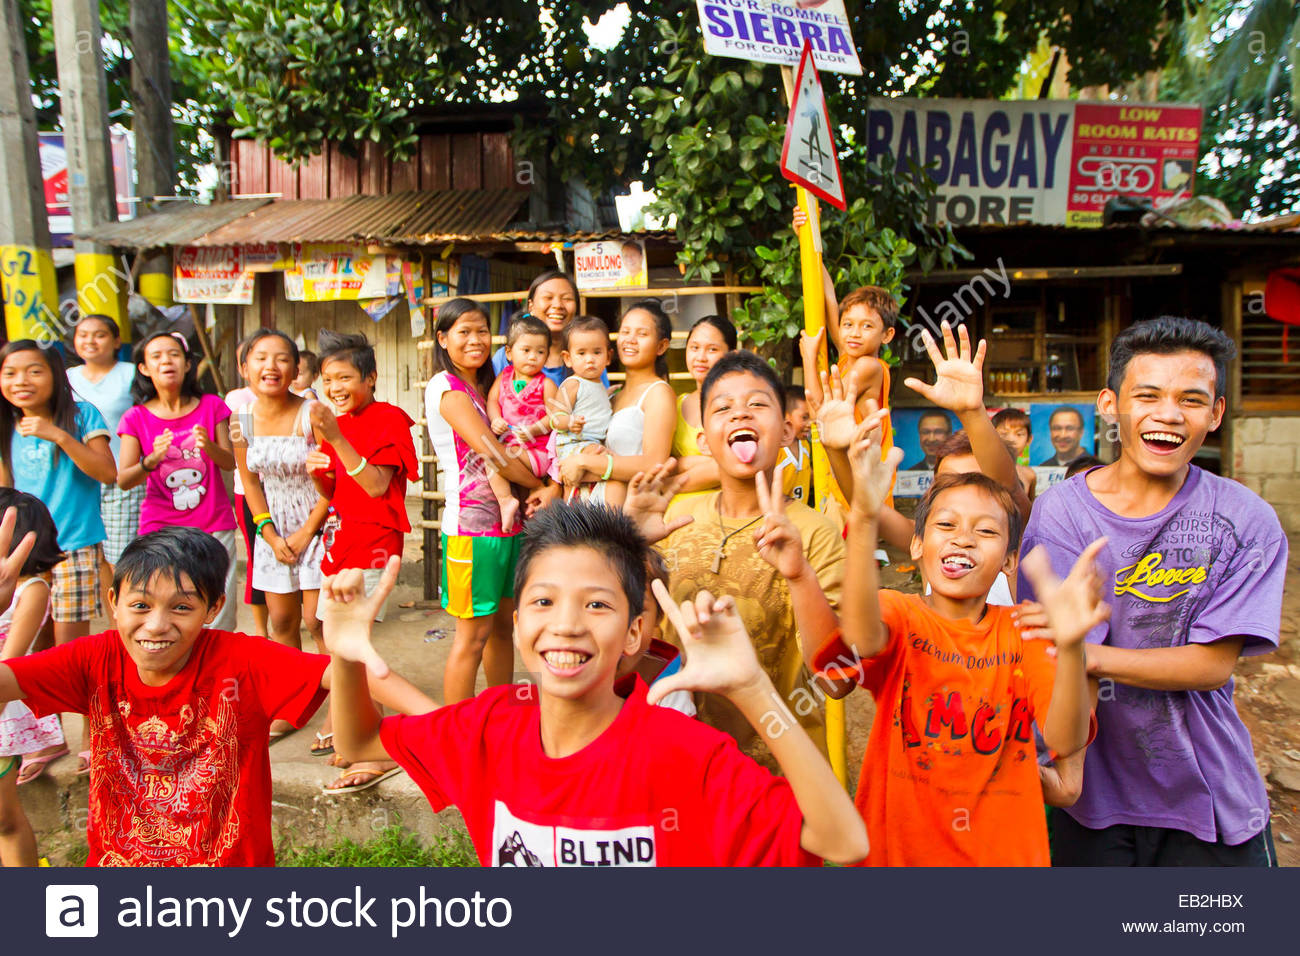 Kids line the streets of Manila as a parade for the upcoming political elections takes place. - Stock Image